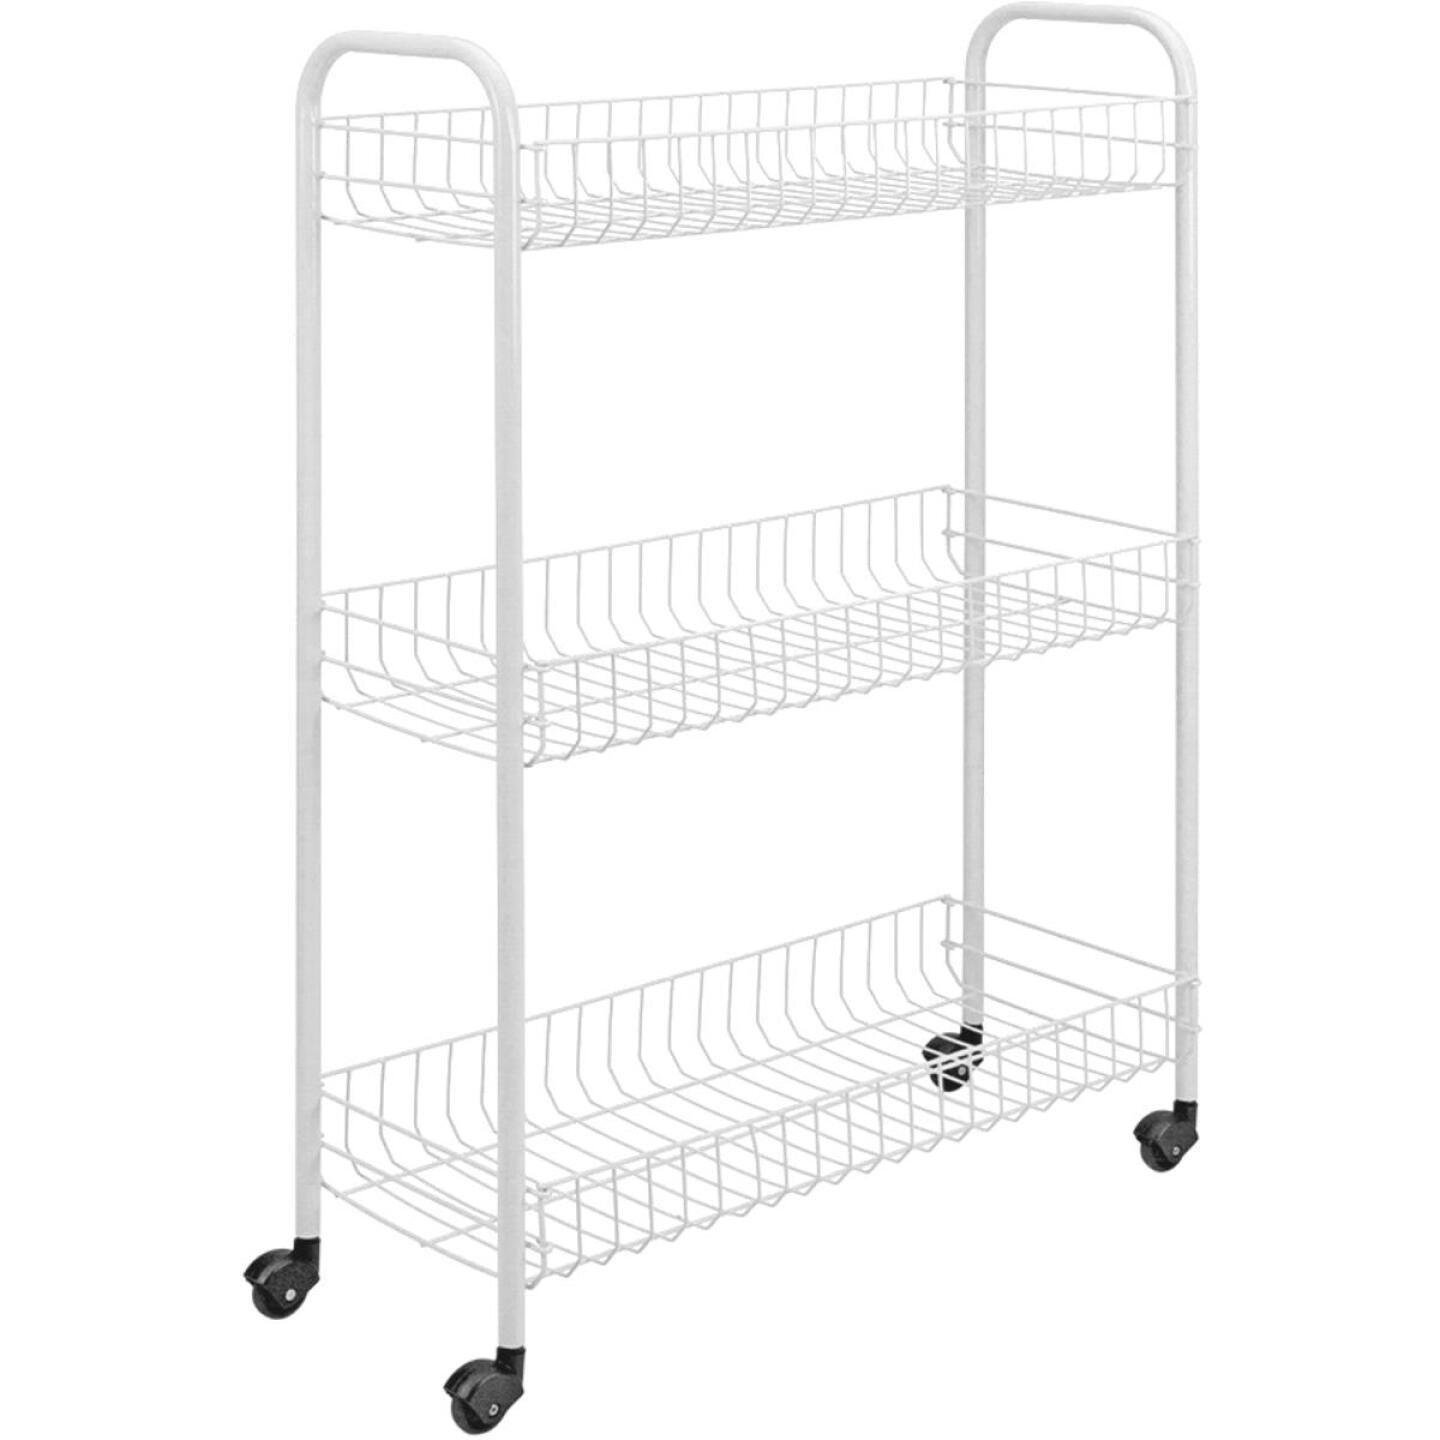 Metaltex 3-Tier Slim Rolling Storage Cart Image 1